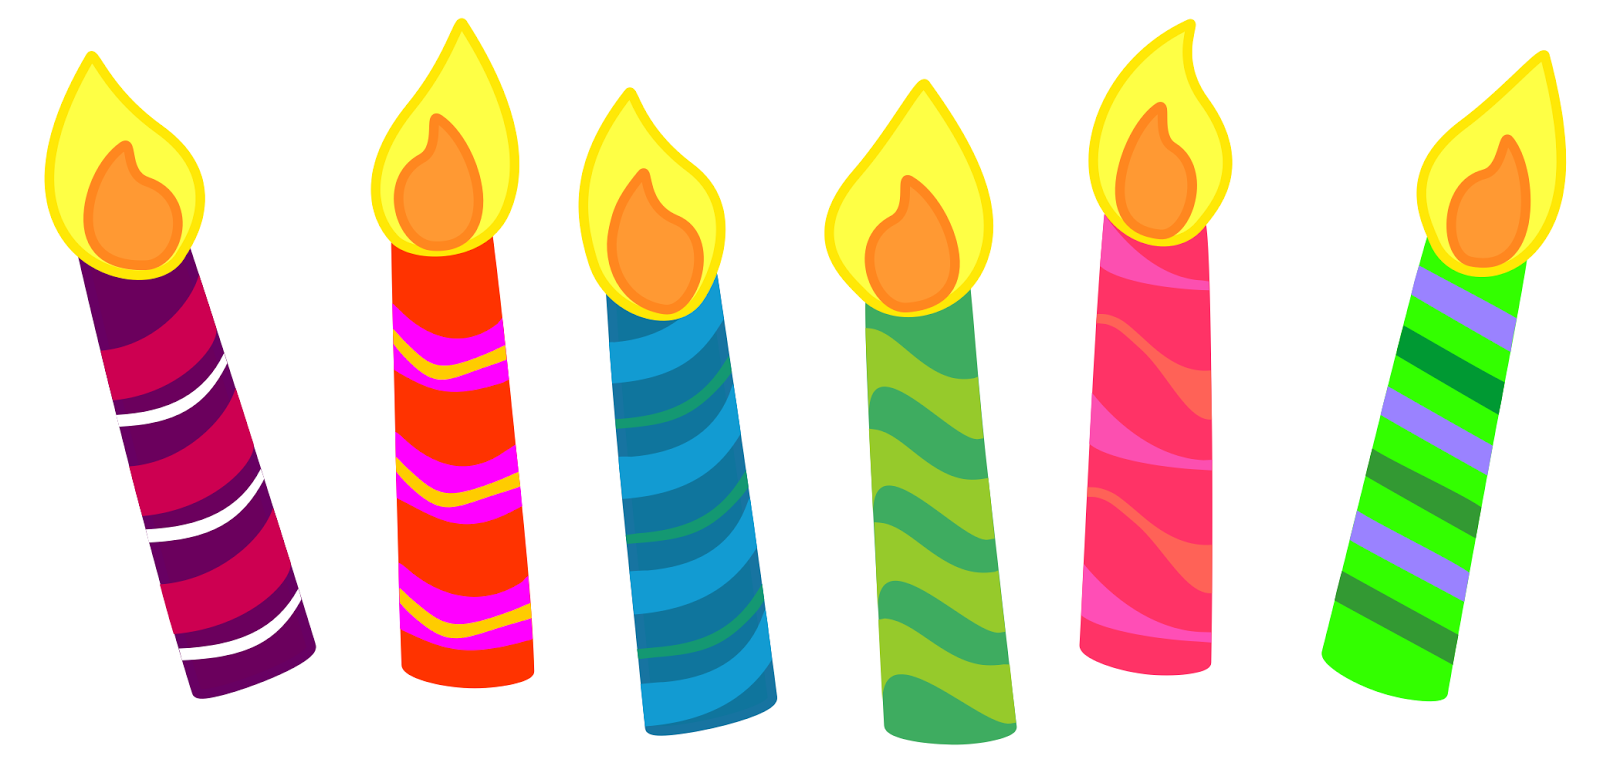 Free large images cards. Candles clipart royalty free download